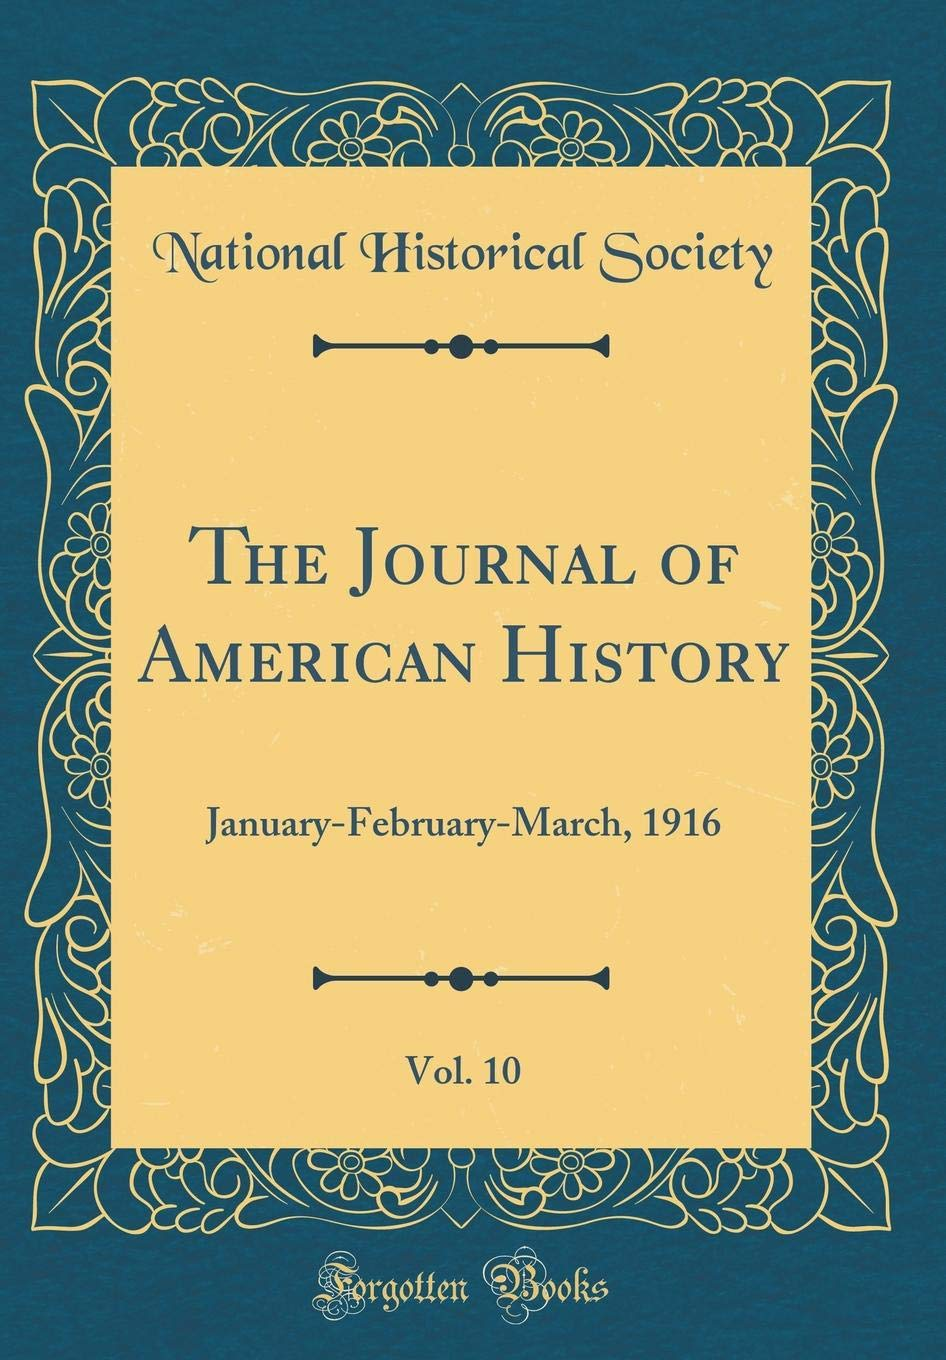 The Journal of American History, Vol. 10: January-February-March, 1916 (Classic Reprint) PDF